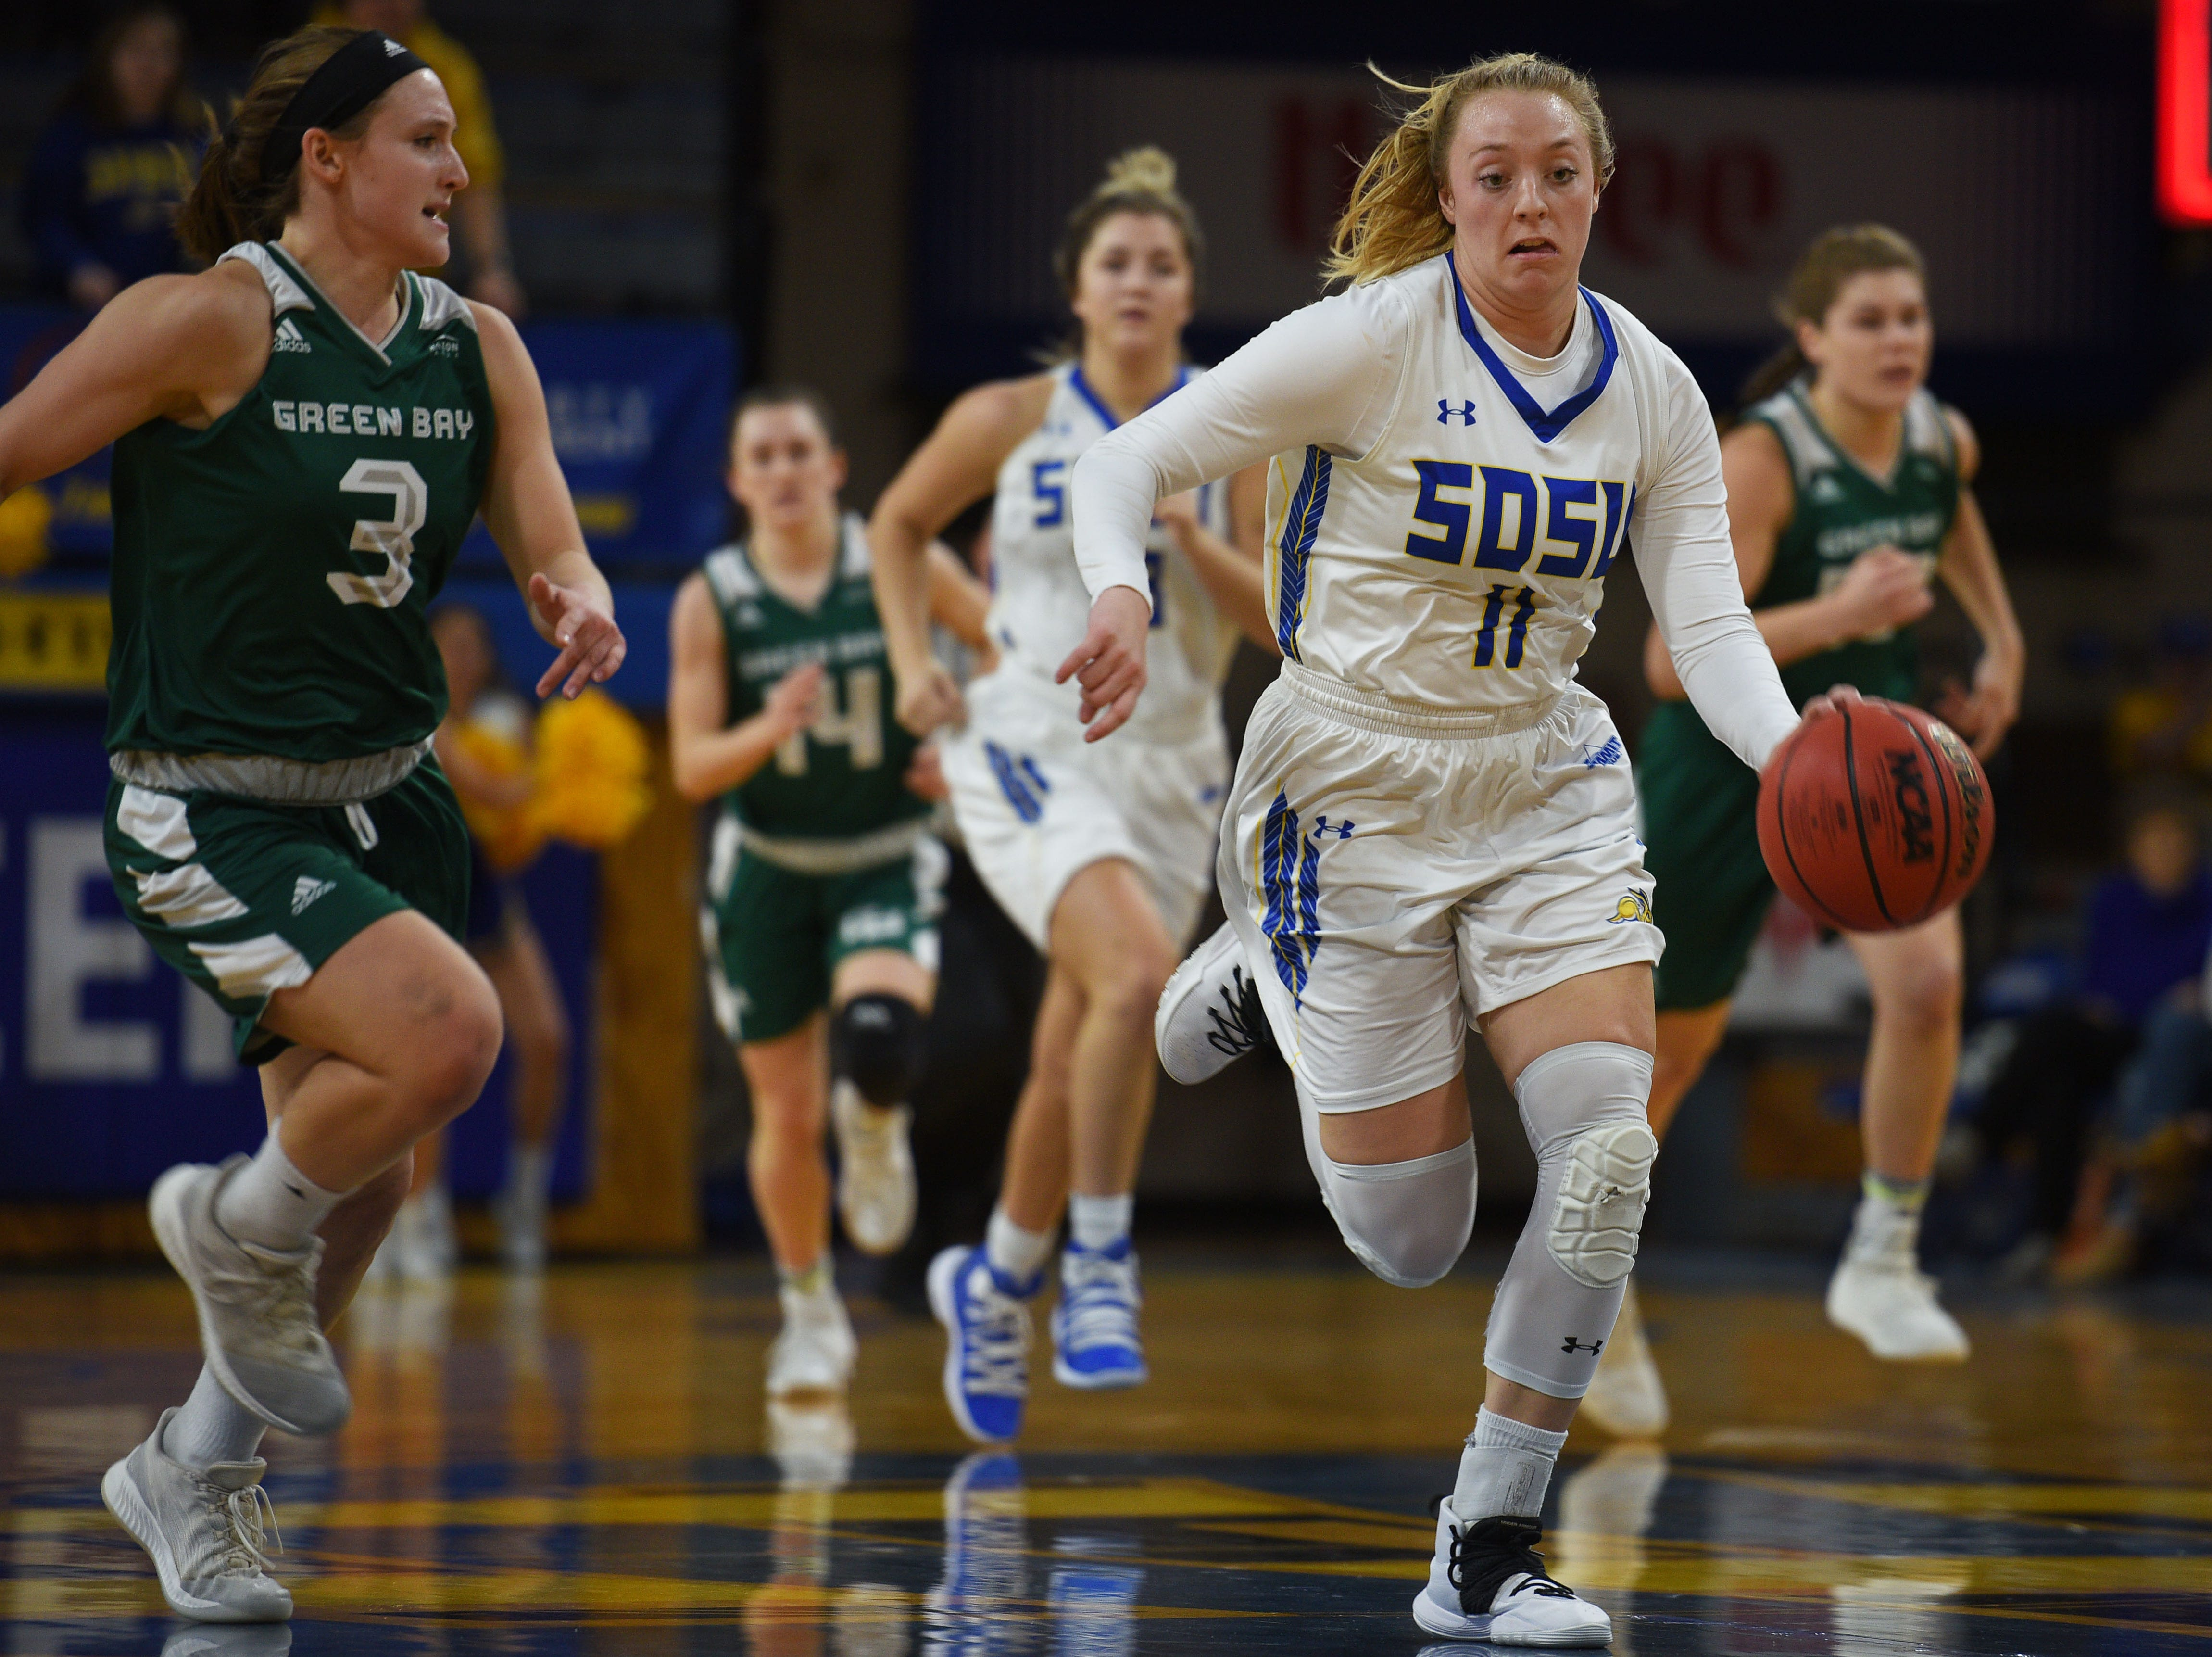 SDSU's Madison Guebert goes against Green Bay defense during the game Thursday, Nov. 29, at Frost Arena in Brookings.